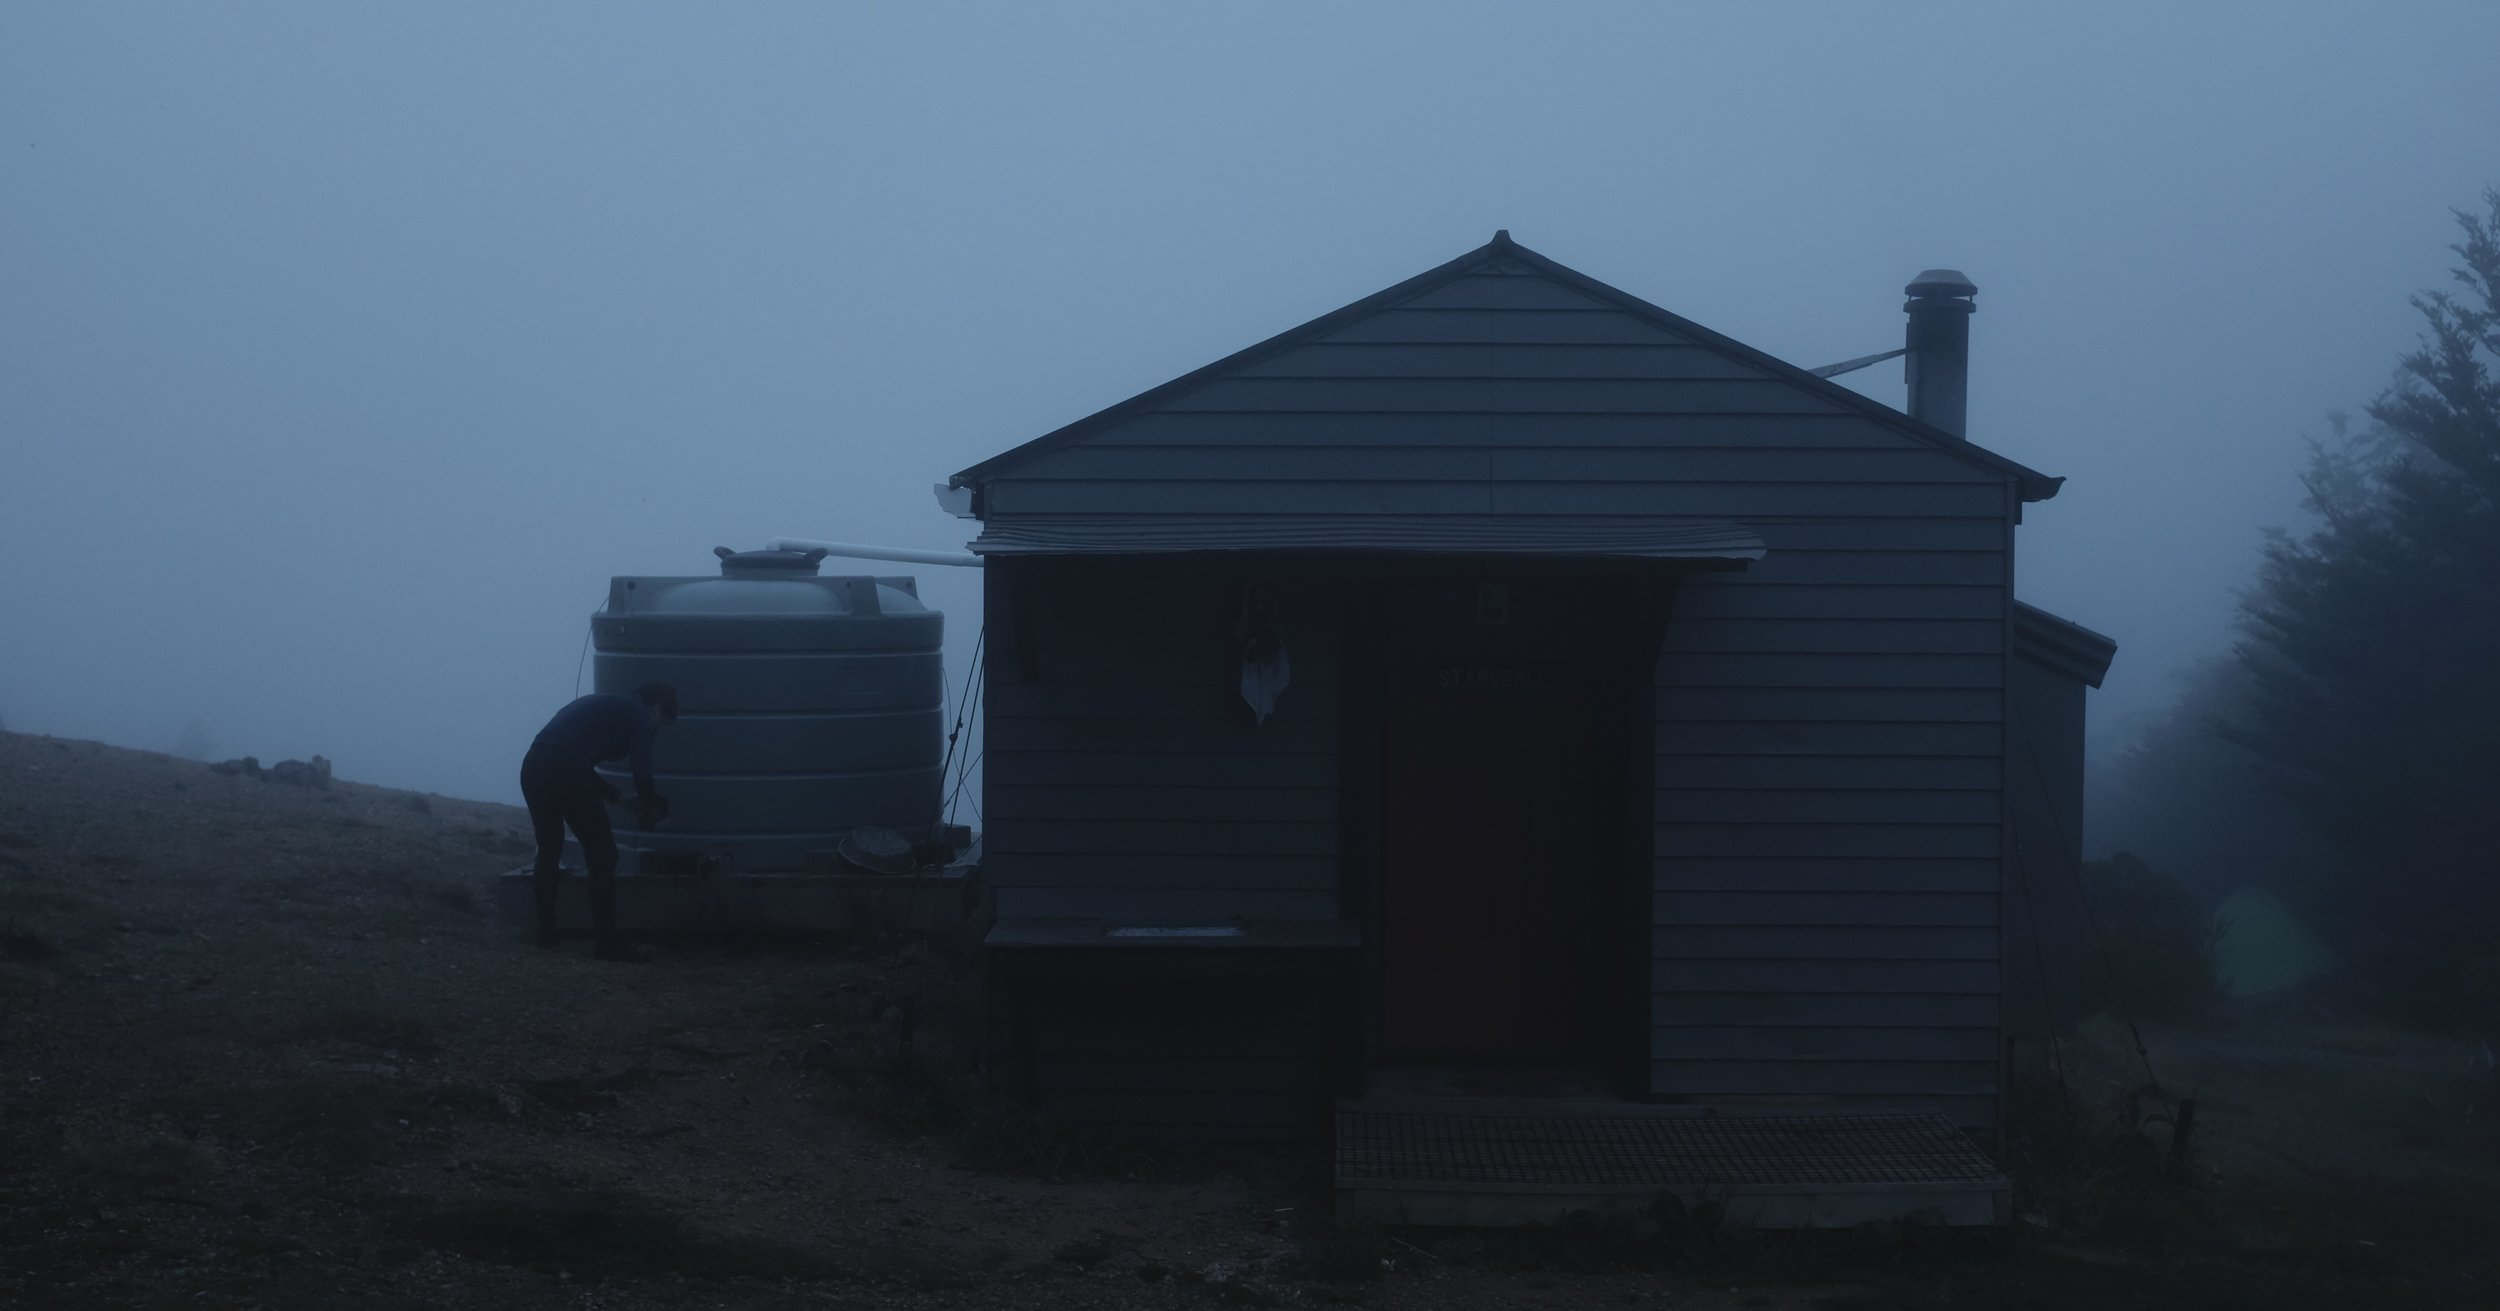 Reaching Starveall hut in the late evening mist.